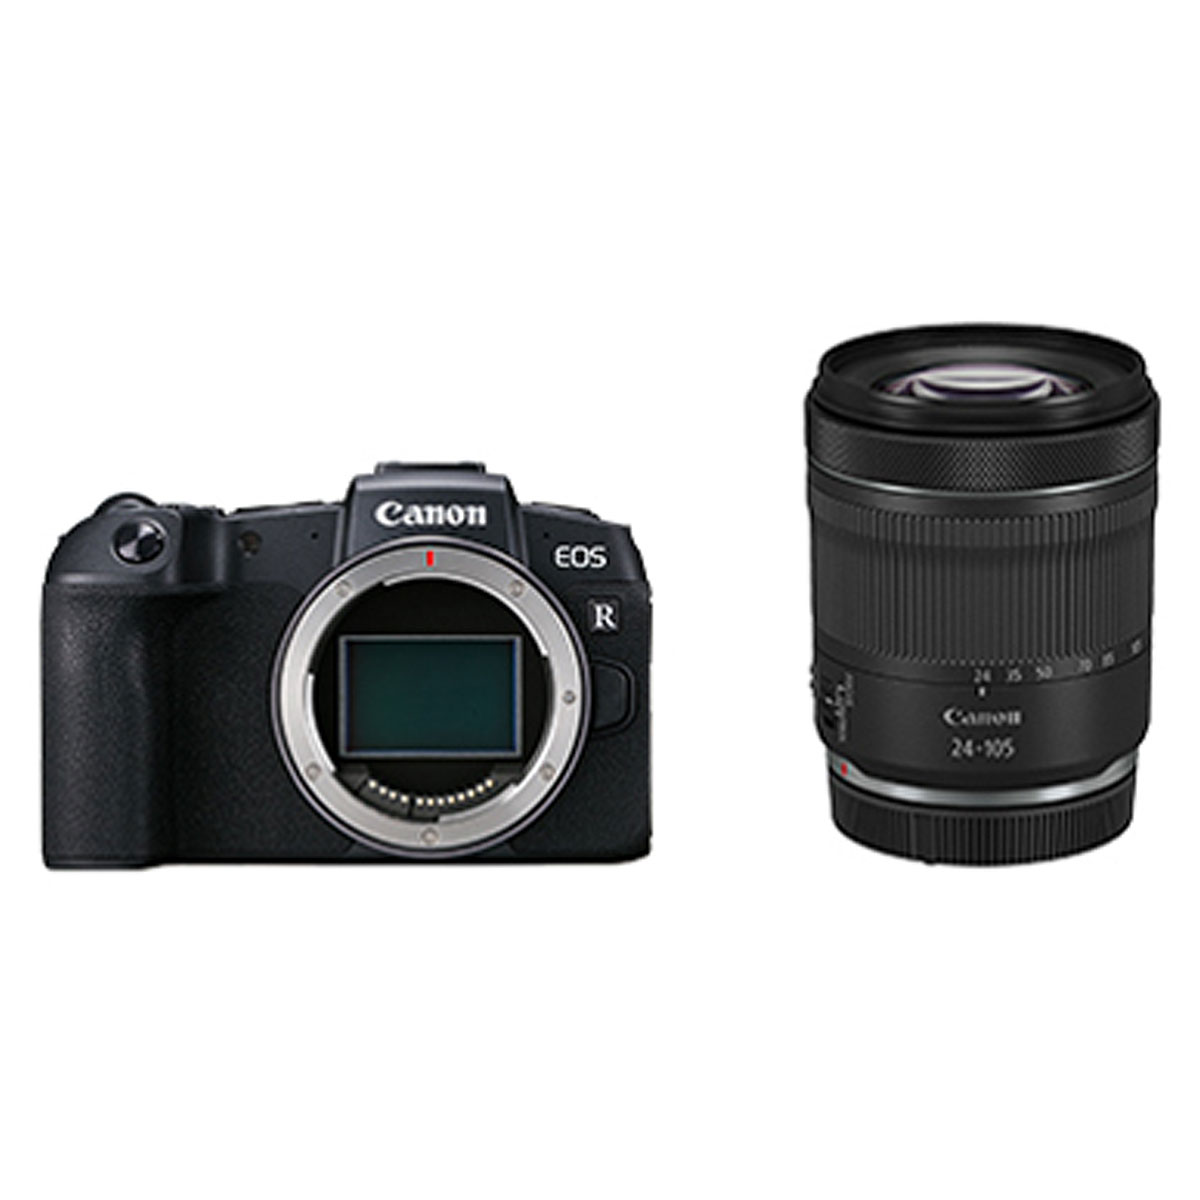 CANON EOS RP RF24-105 IS STM レンズキット デジカメ一眼 (1213944)【別途延長保証契約可能】【宅配便送料無料】